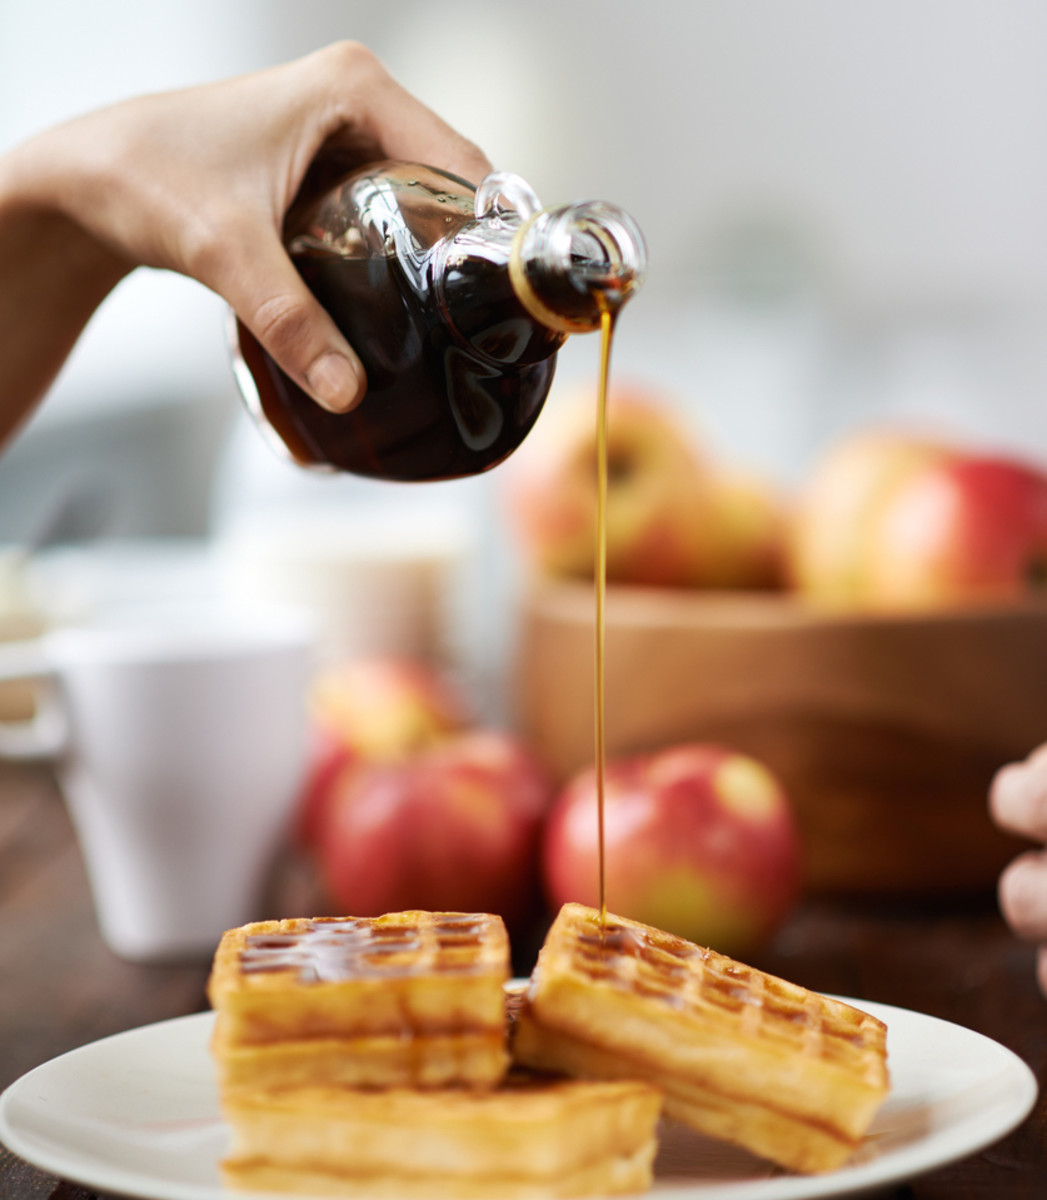 How It's Made: Maple Syrup